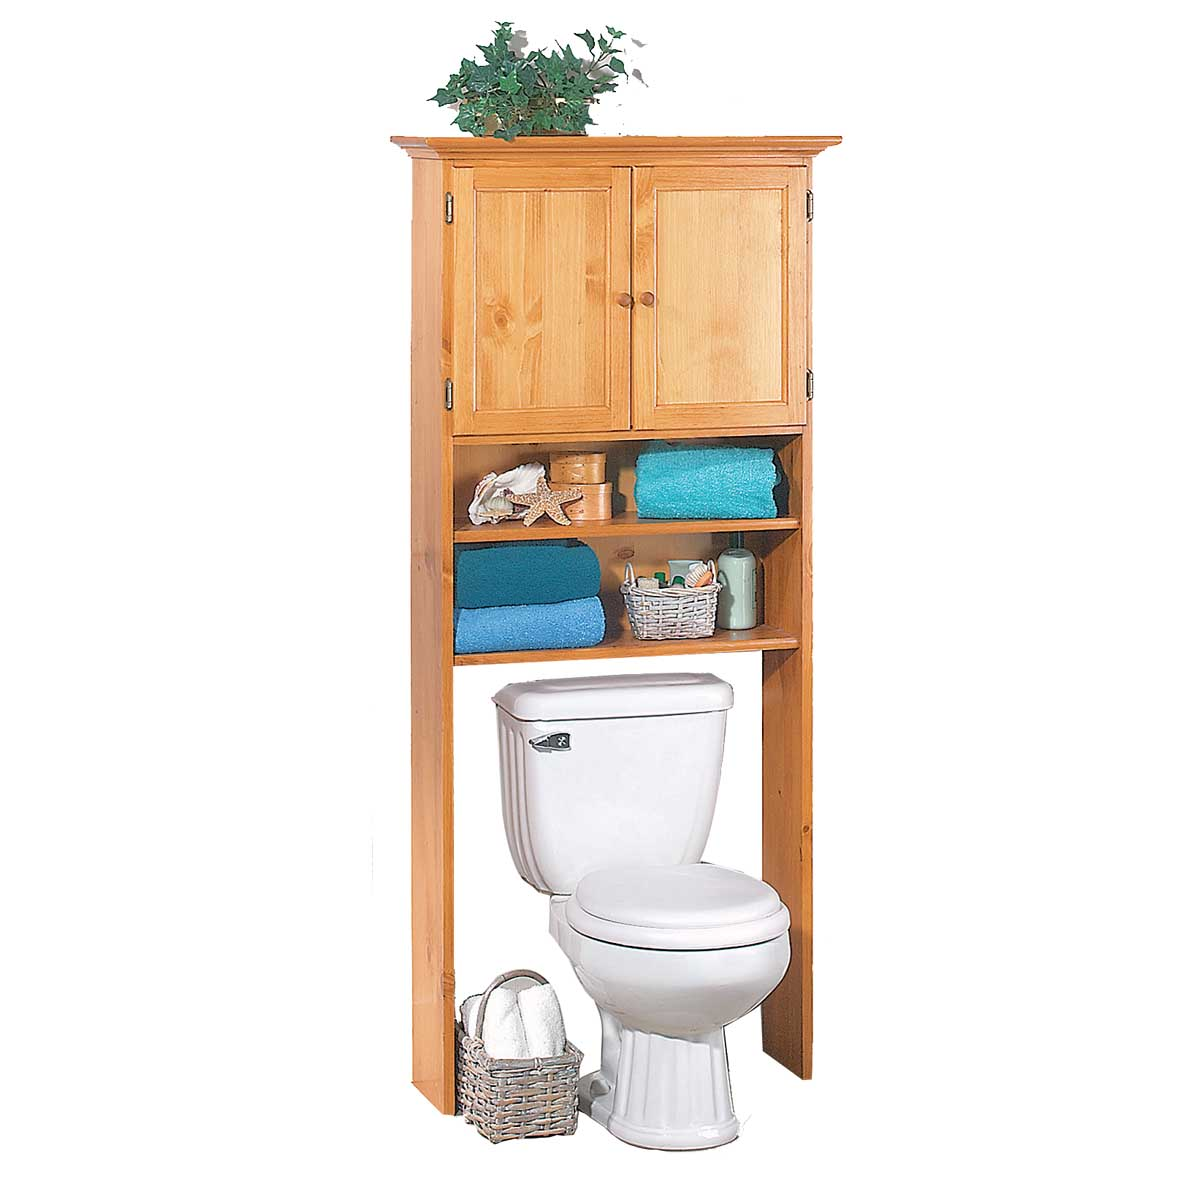 over toilet shelf over toilet shelf storage bathroom heirloom pine